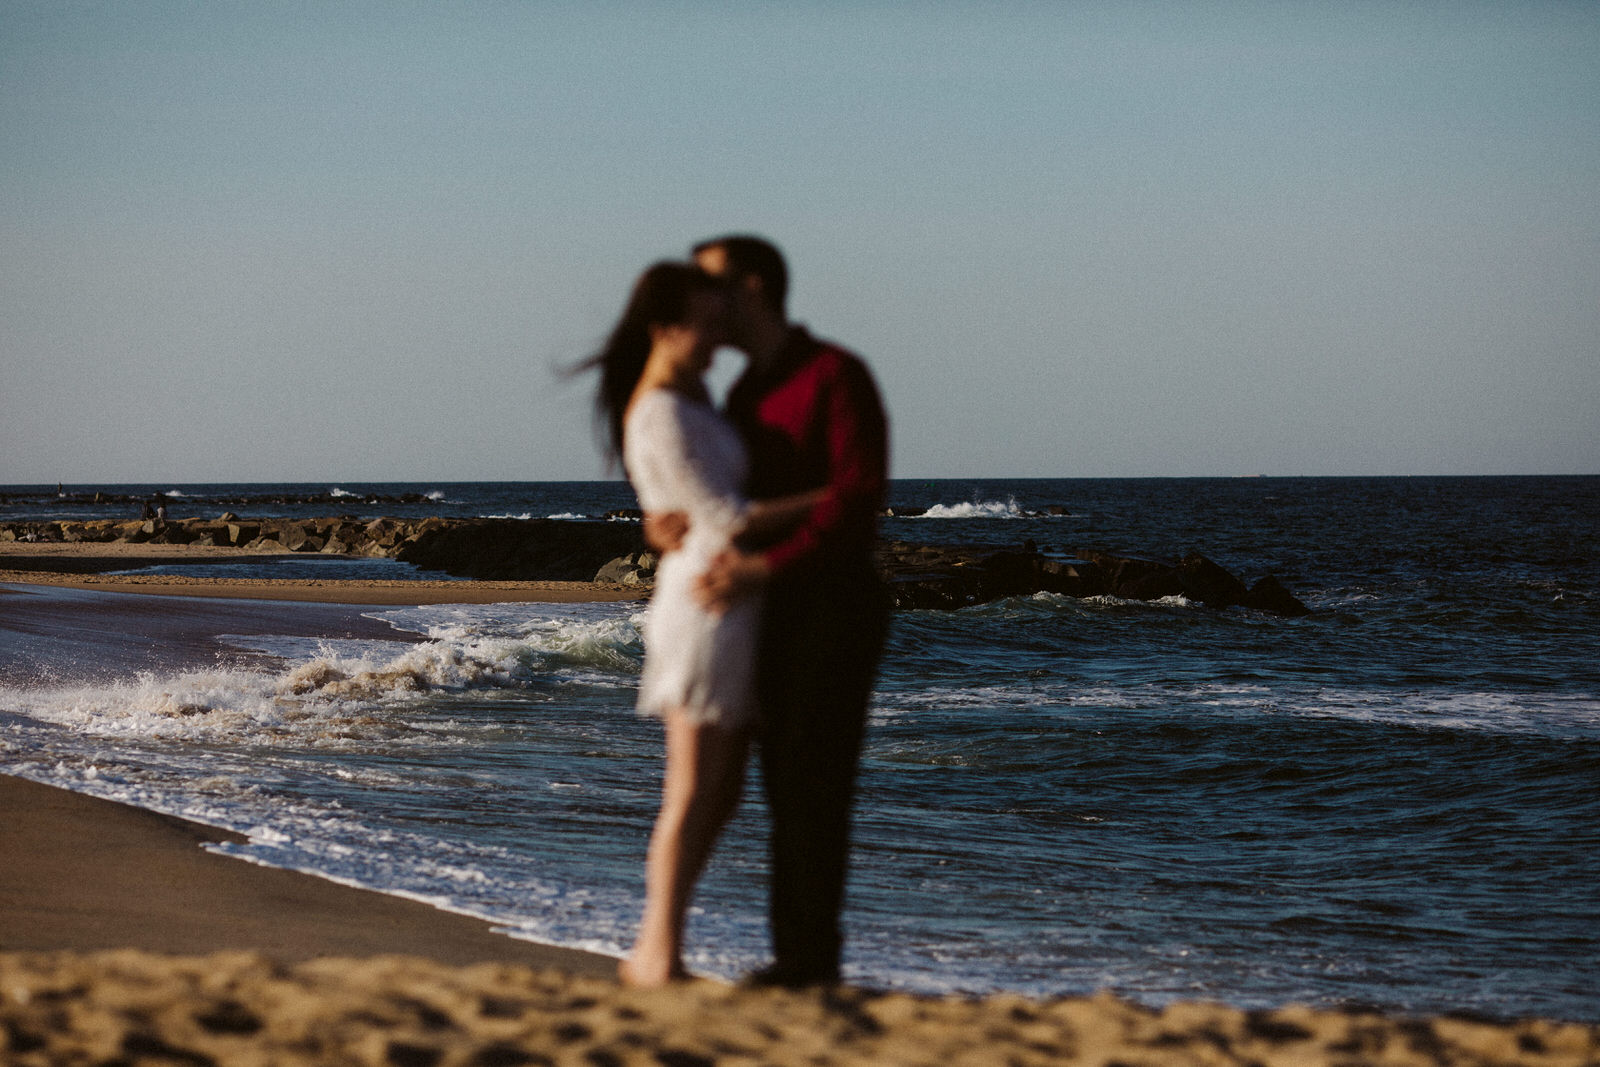 sunset-engagement-portraits-jersey-shore-asbury-park-tiny-house-photo-wedding-photographer-7.jpg